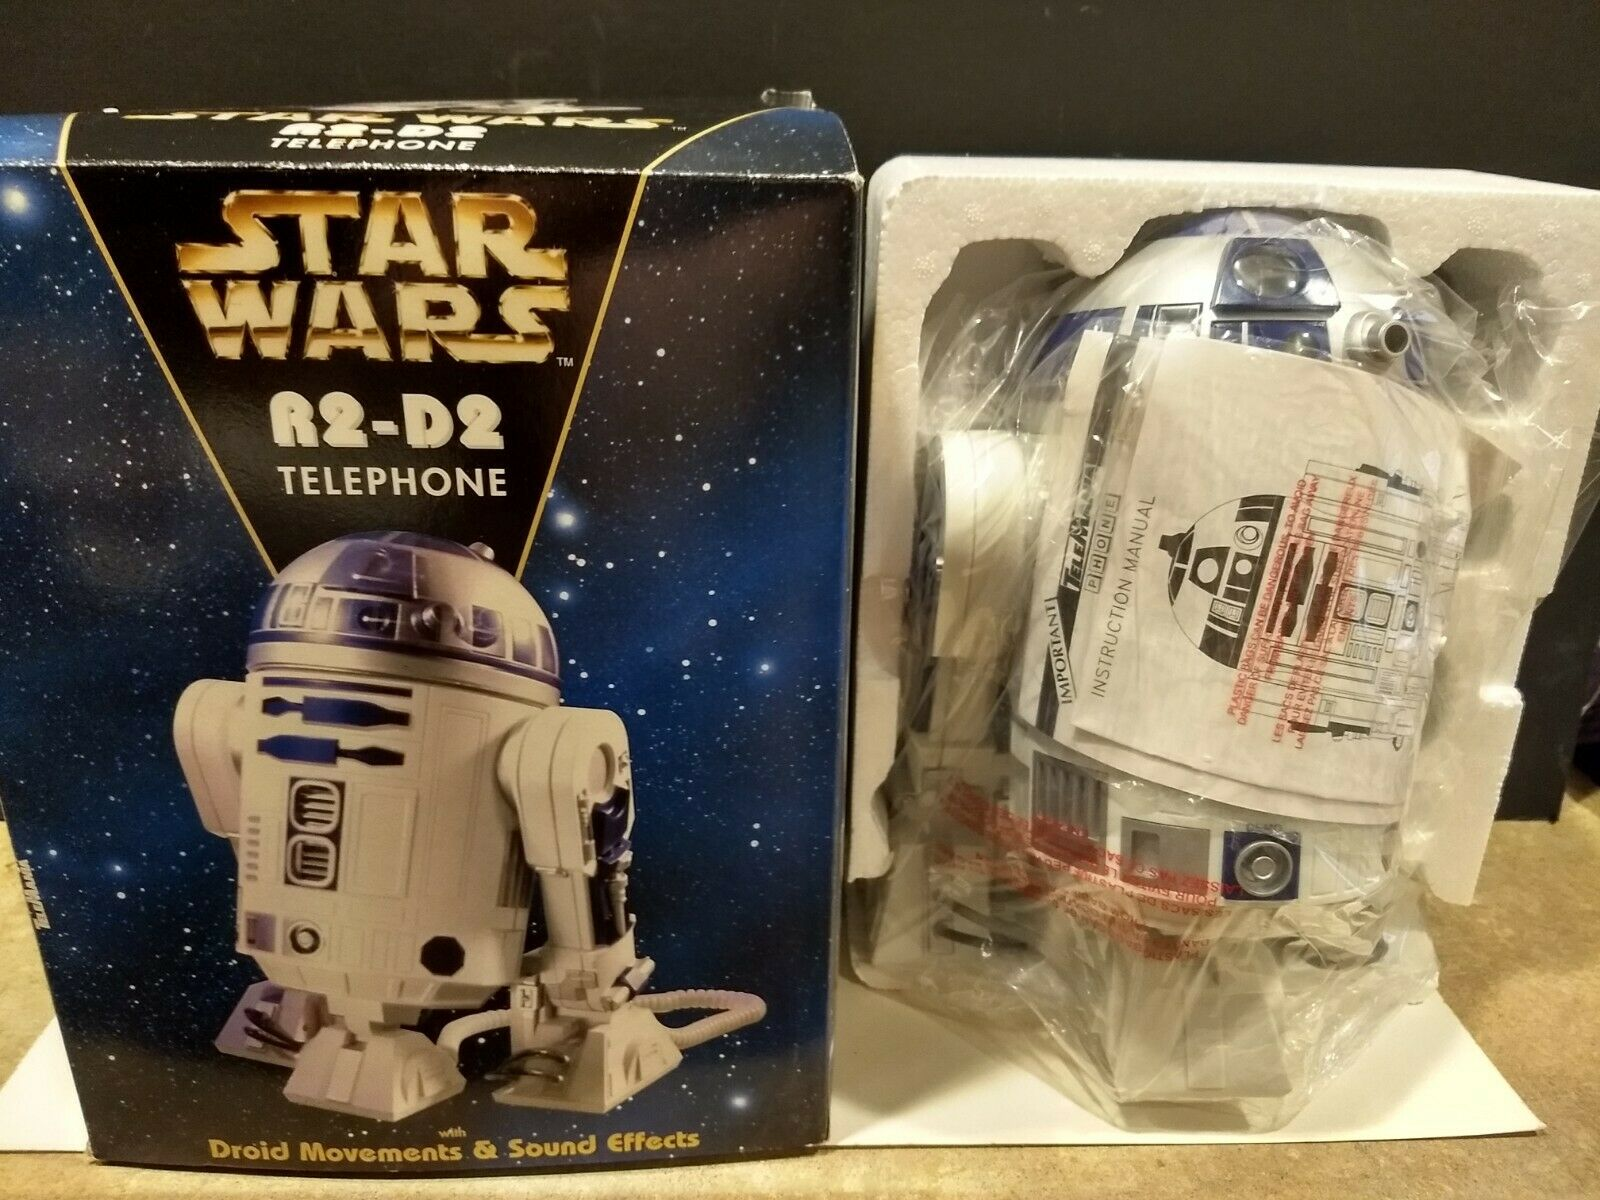 STAR WARS VINTAGE R2-D2 Telephone. 1997 Lucasfilm LTD. New in Box. Never Used.